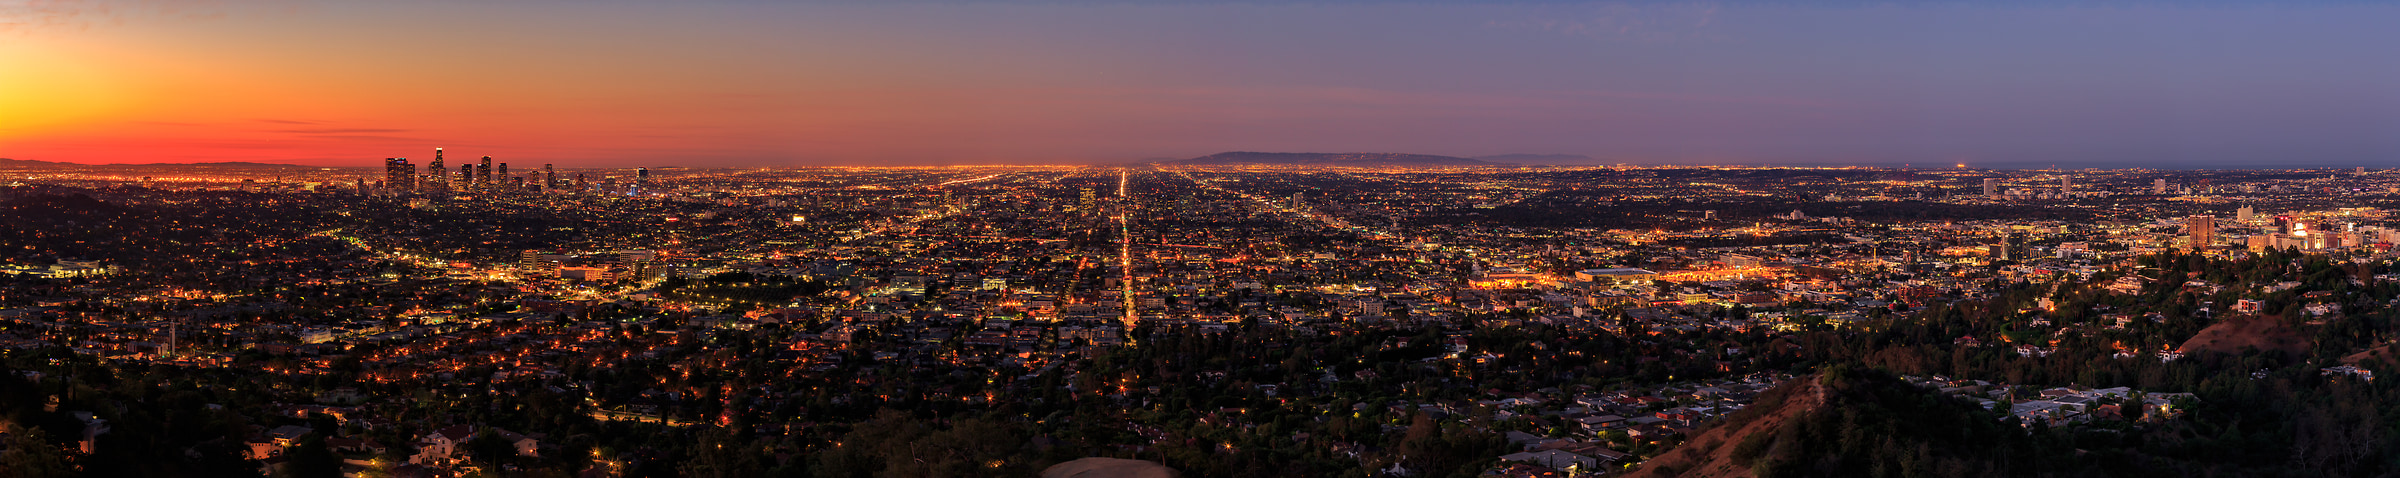 172 megapixels! A very high resolution, large-format VAST photo print of the Los Angeles and Hollywood skyline in California at sunrise and sunset; landscape photo created by cityscape photographer Guido Brandt